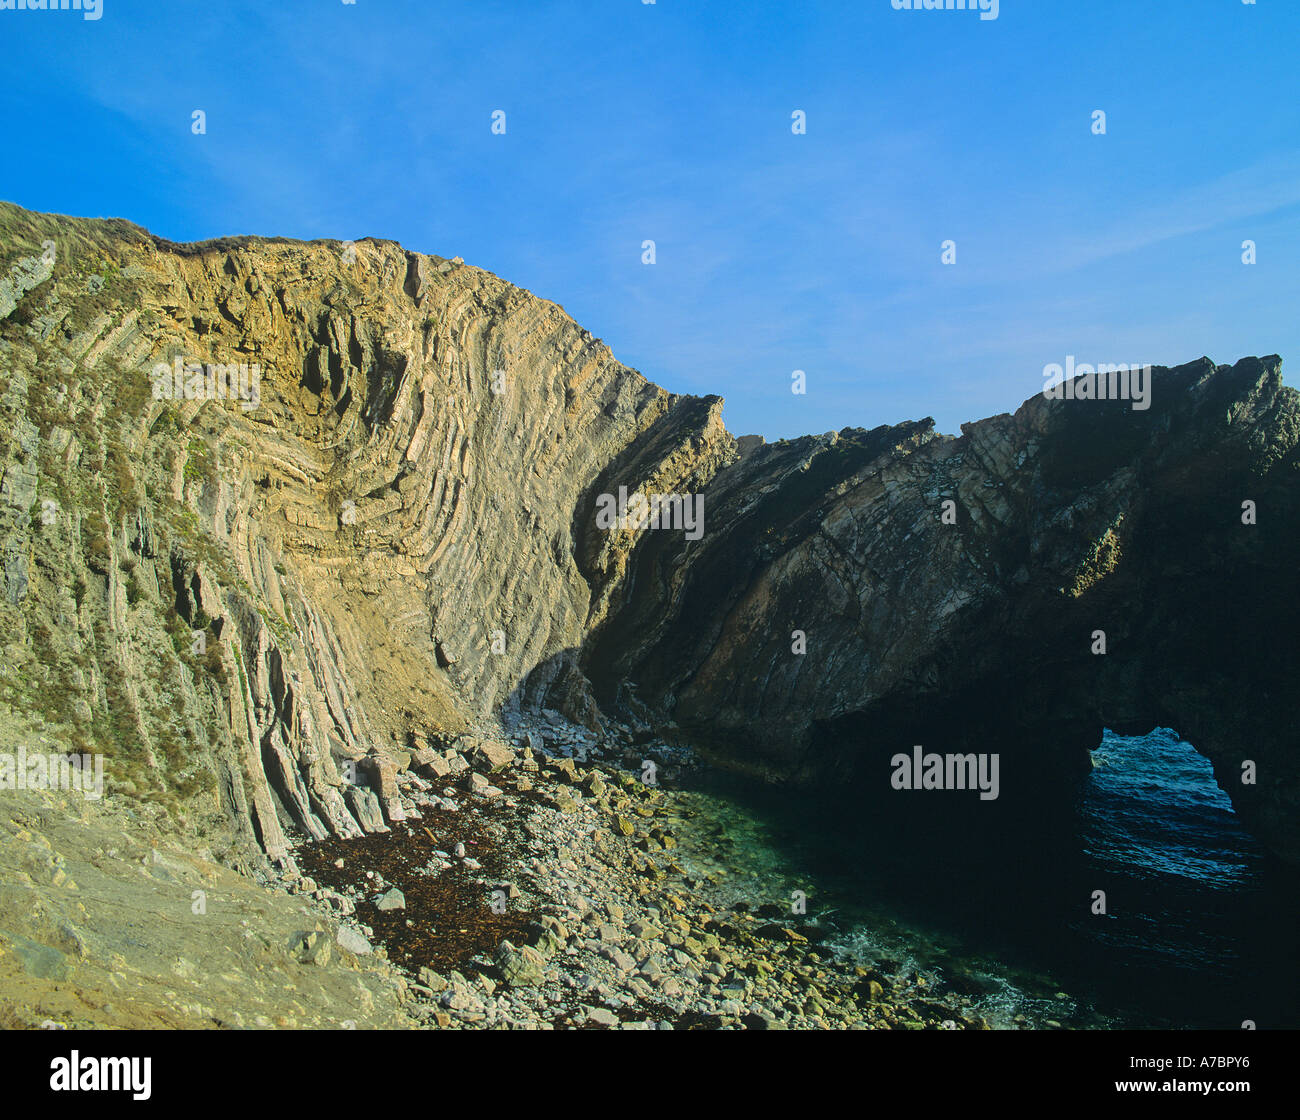 Lulworth Crumple Twisted strata of rock layers caused by pressure and movement on the cliffs by Lulworth Cove Dorset ENGLAND - Stock Image